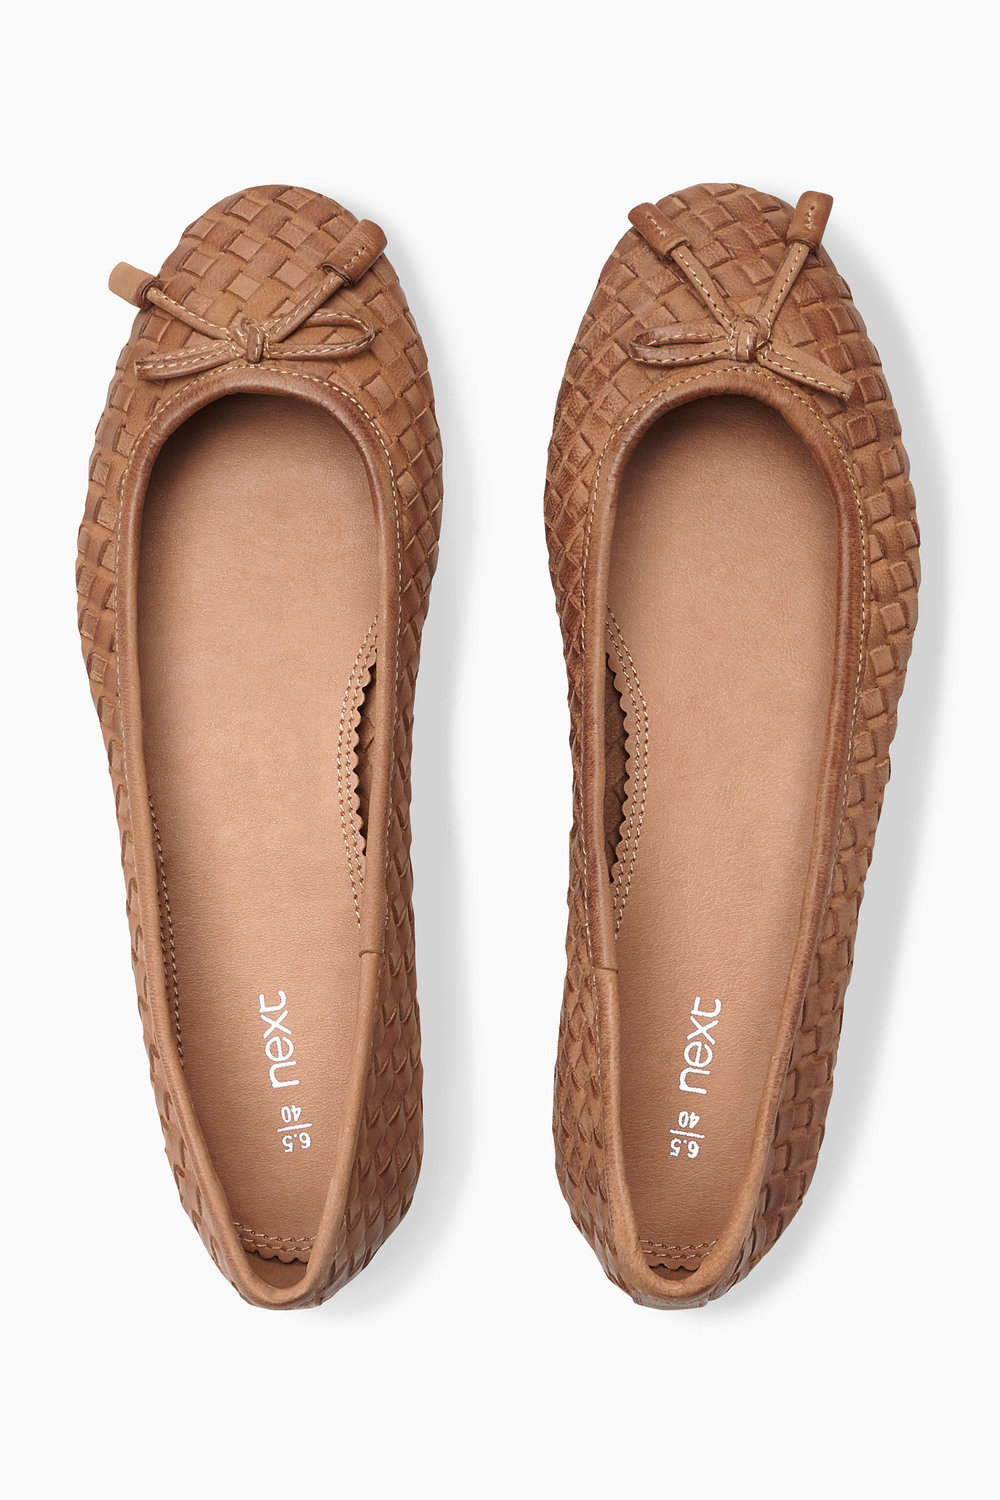 bfec4f5a303 Next Woven Leather Ballerinas Online